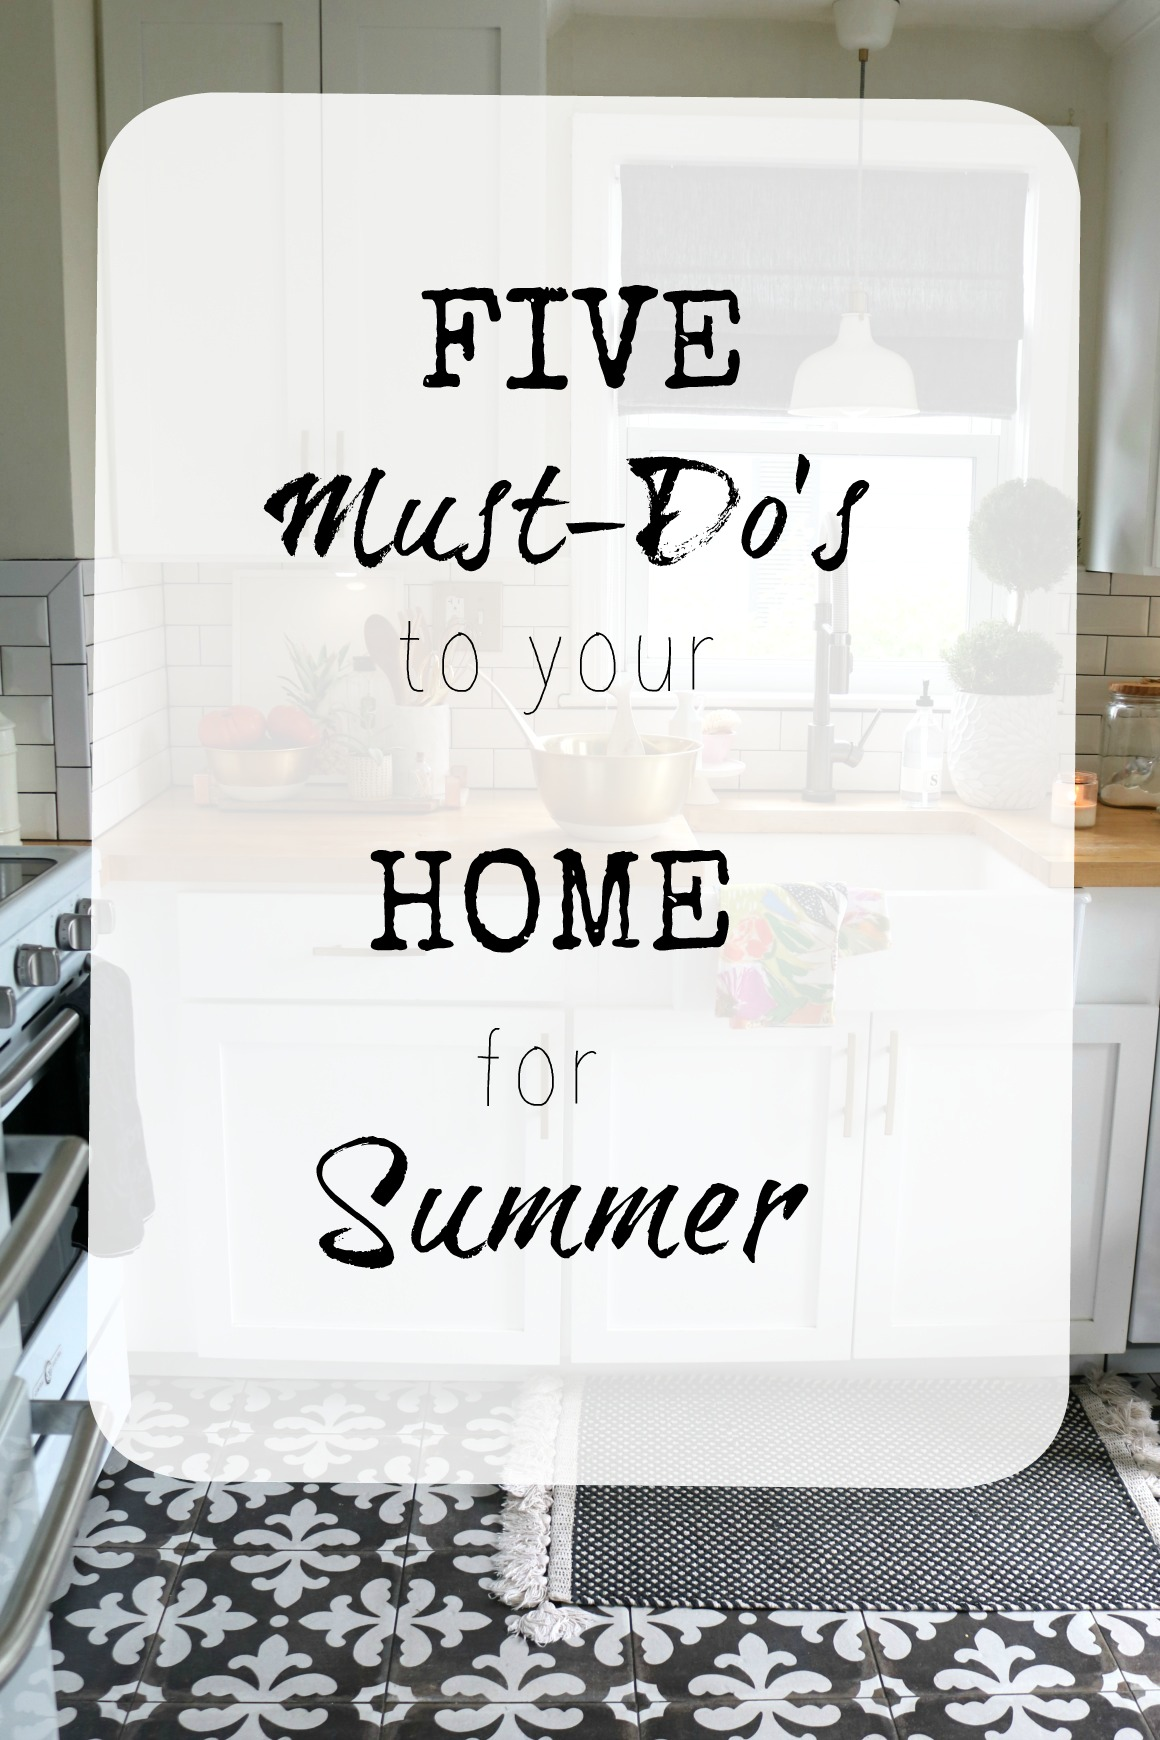 Five Must-Do's to your Home for Summer!